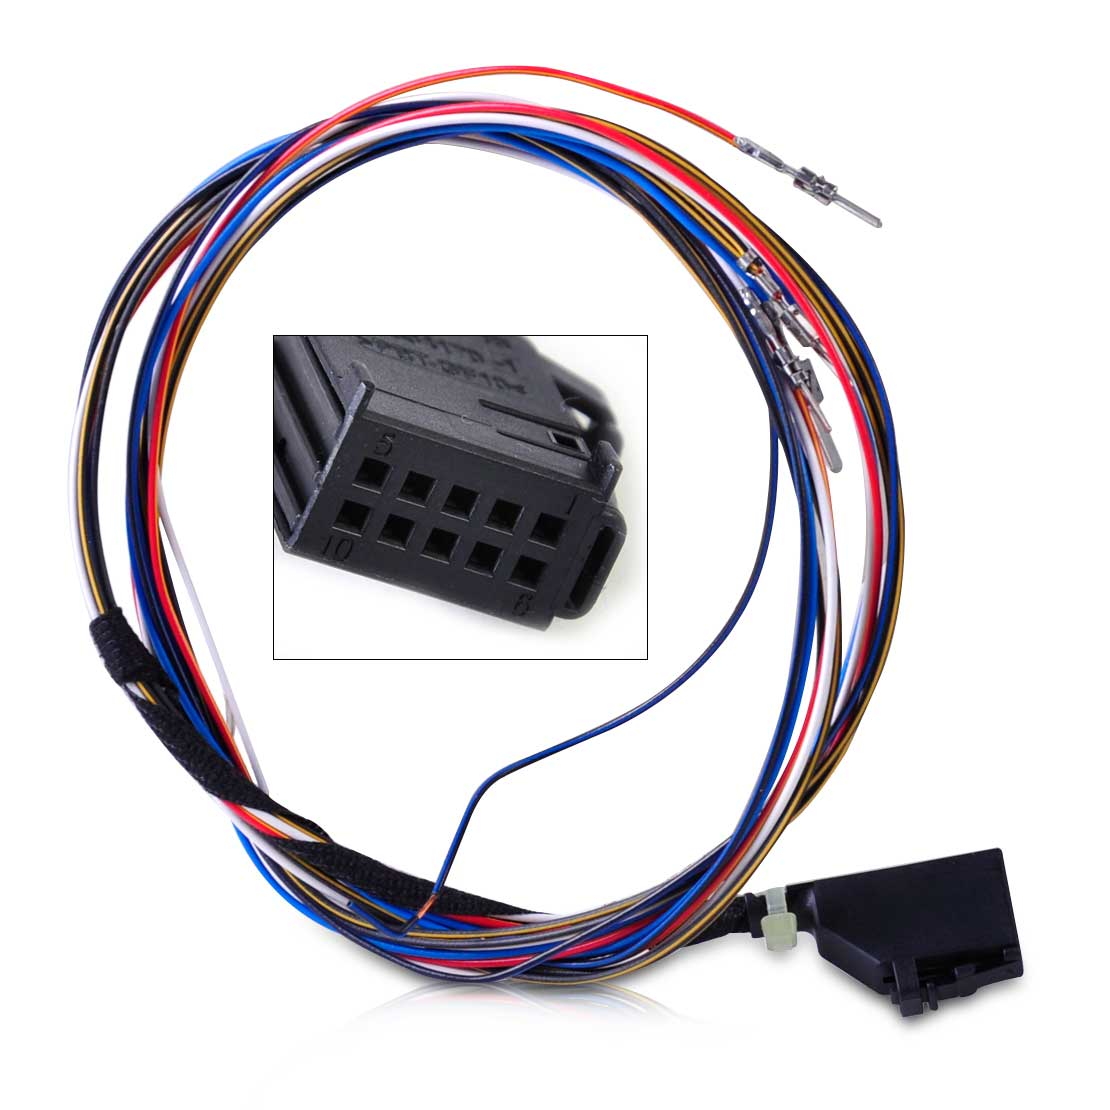 DWCX 1J1970011F GRA Cruise Control System font b Harness b font Cable Wire For font b online get cheap vw mk4 harness aliexpress com alibaba group MK5 Jetta at fashall.co